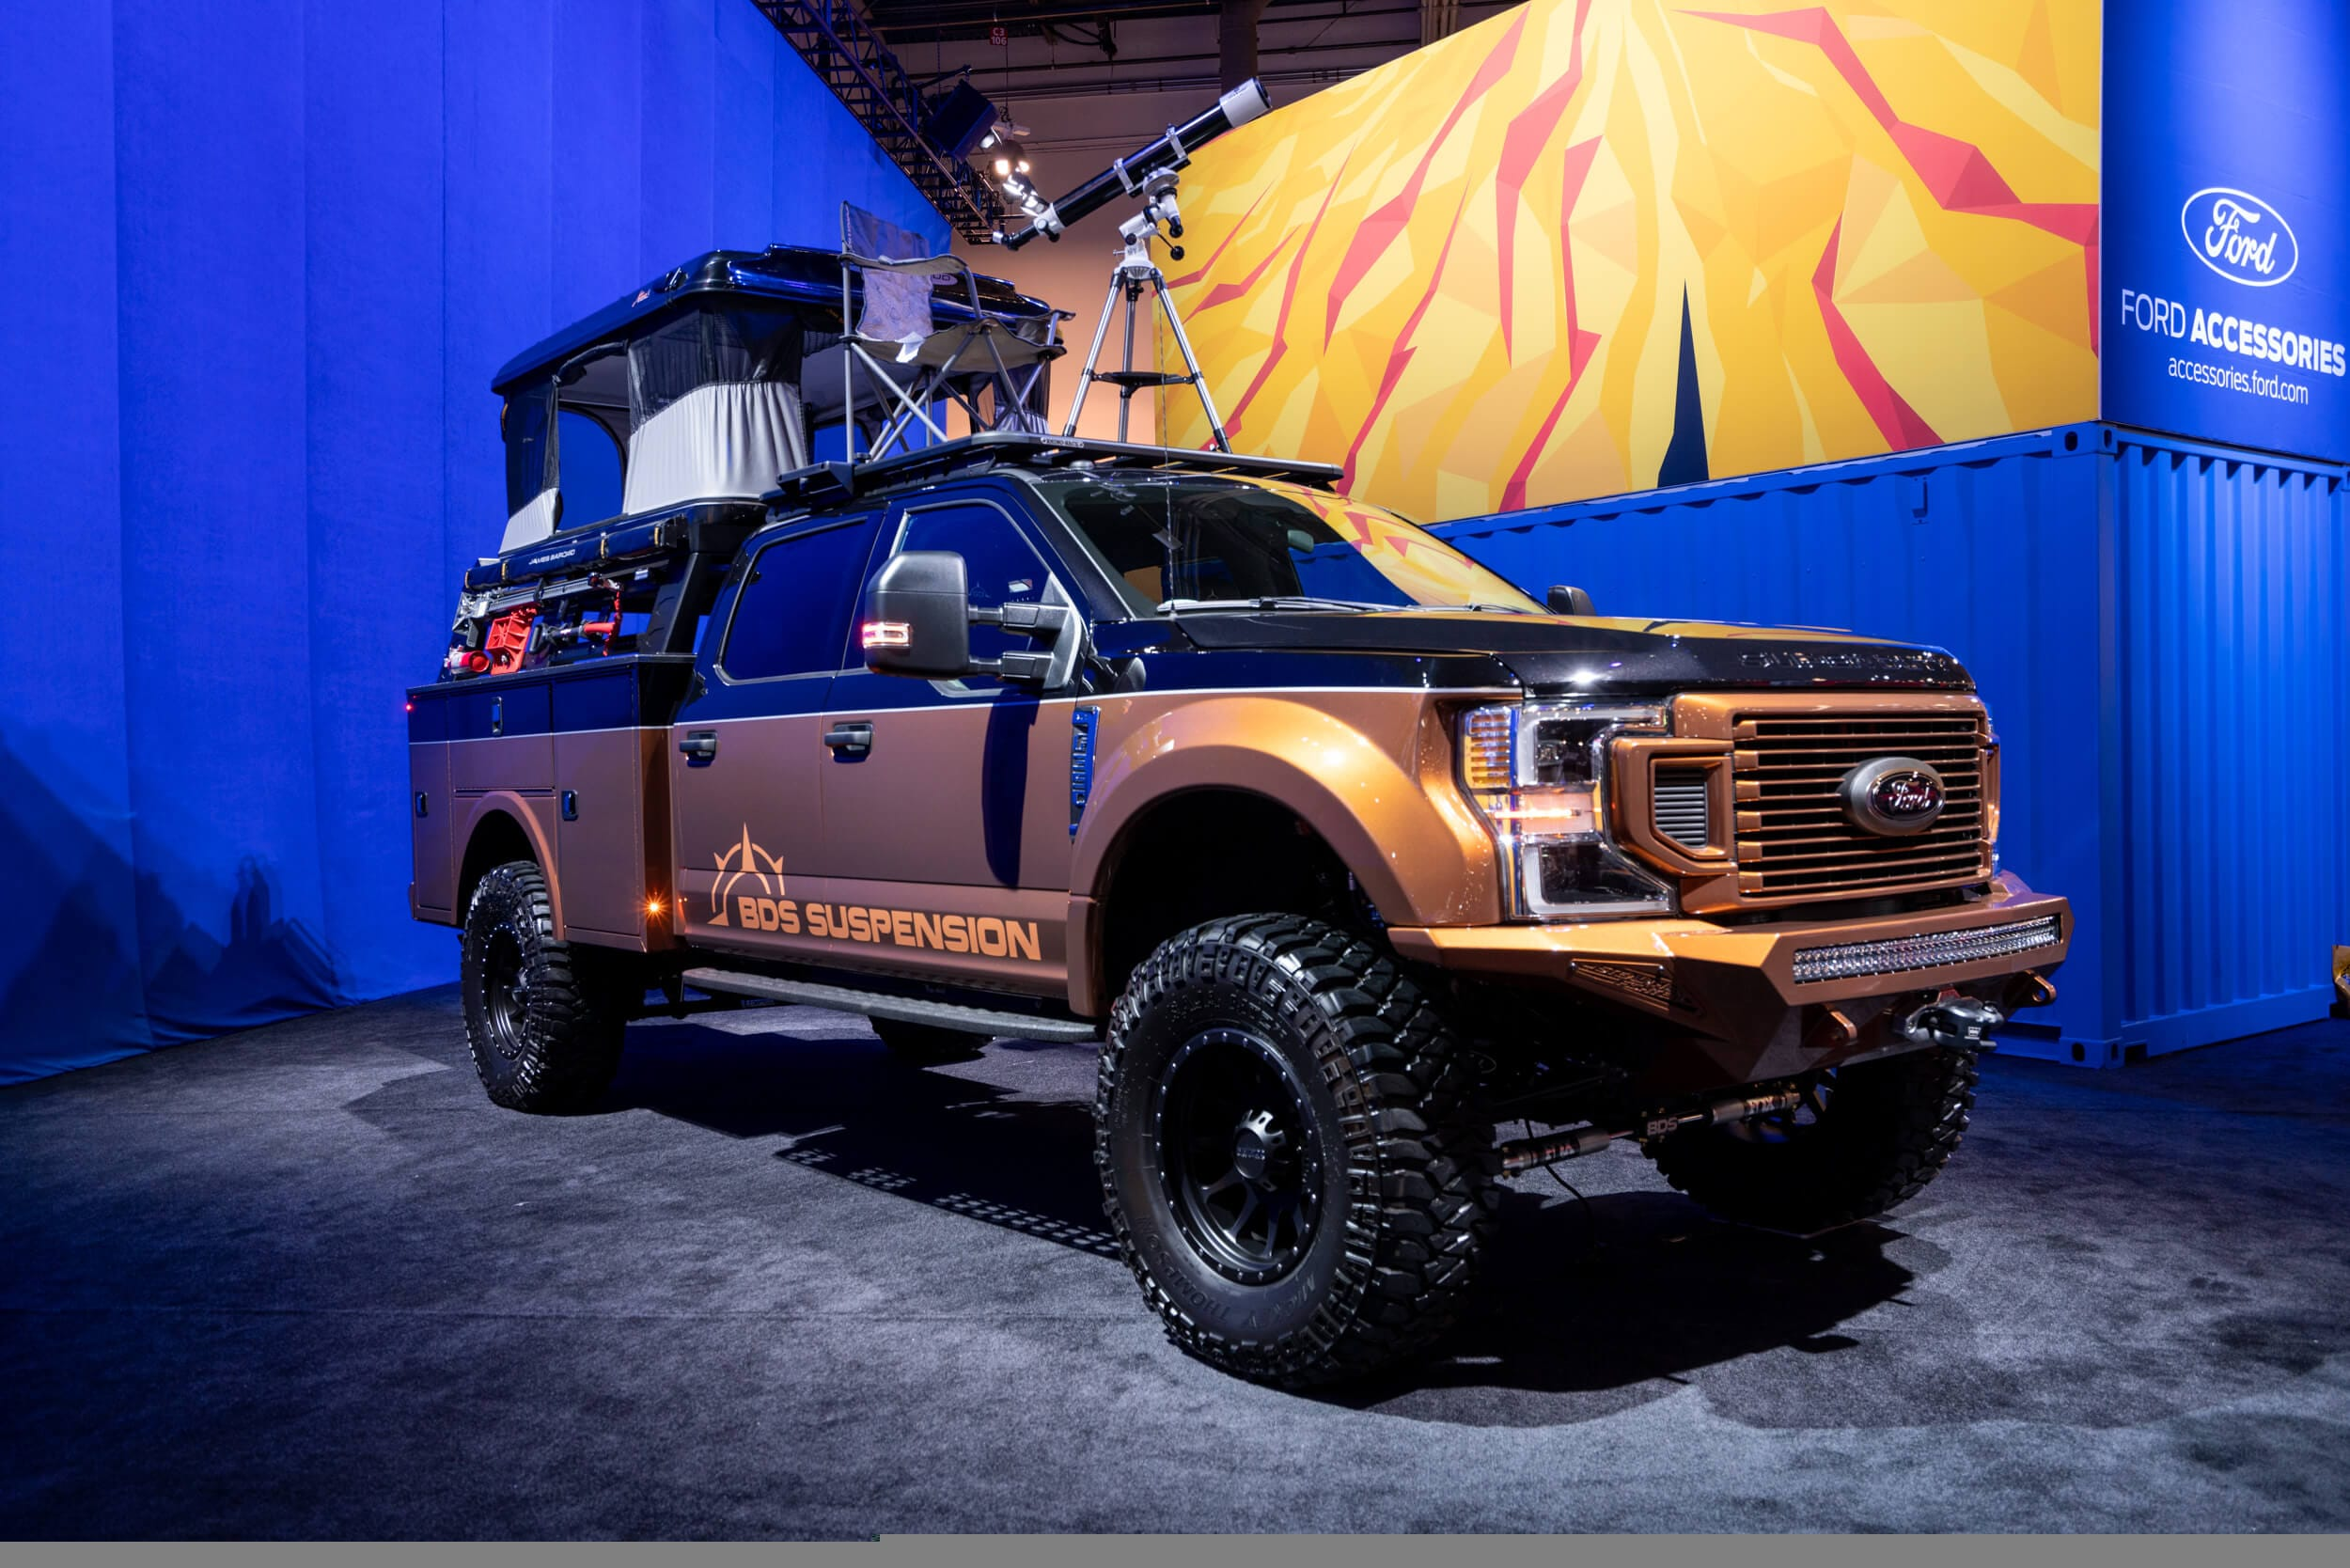 This custom Ford F-350 is ready to take you overlanding in style.